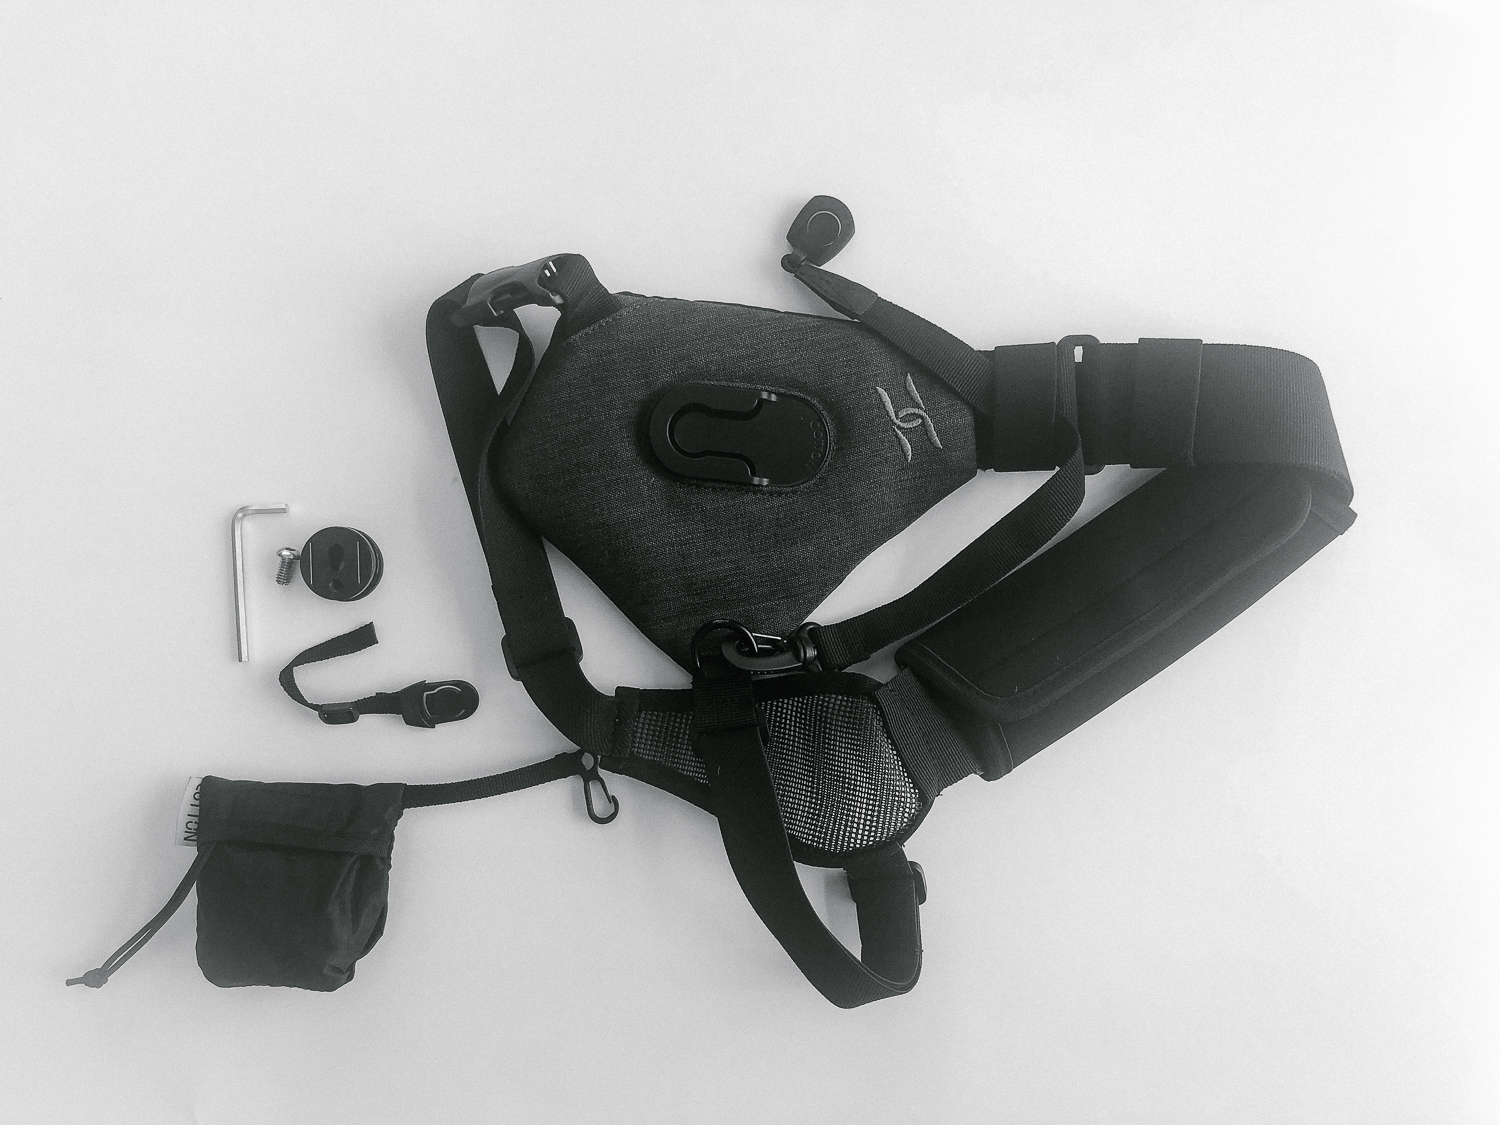 Review of the SKOUT Handsfree Camera Carrying System by Cotton Carrier